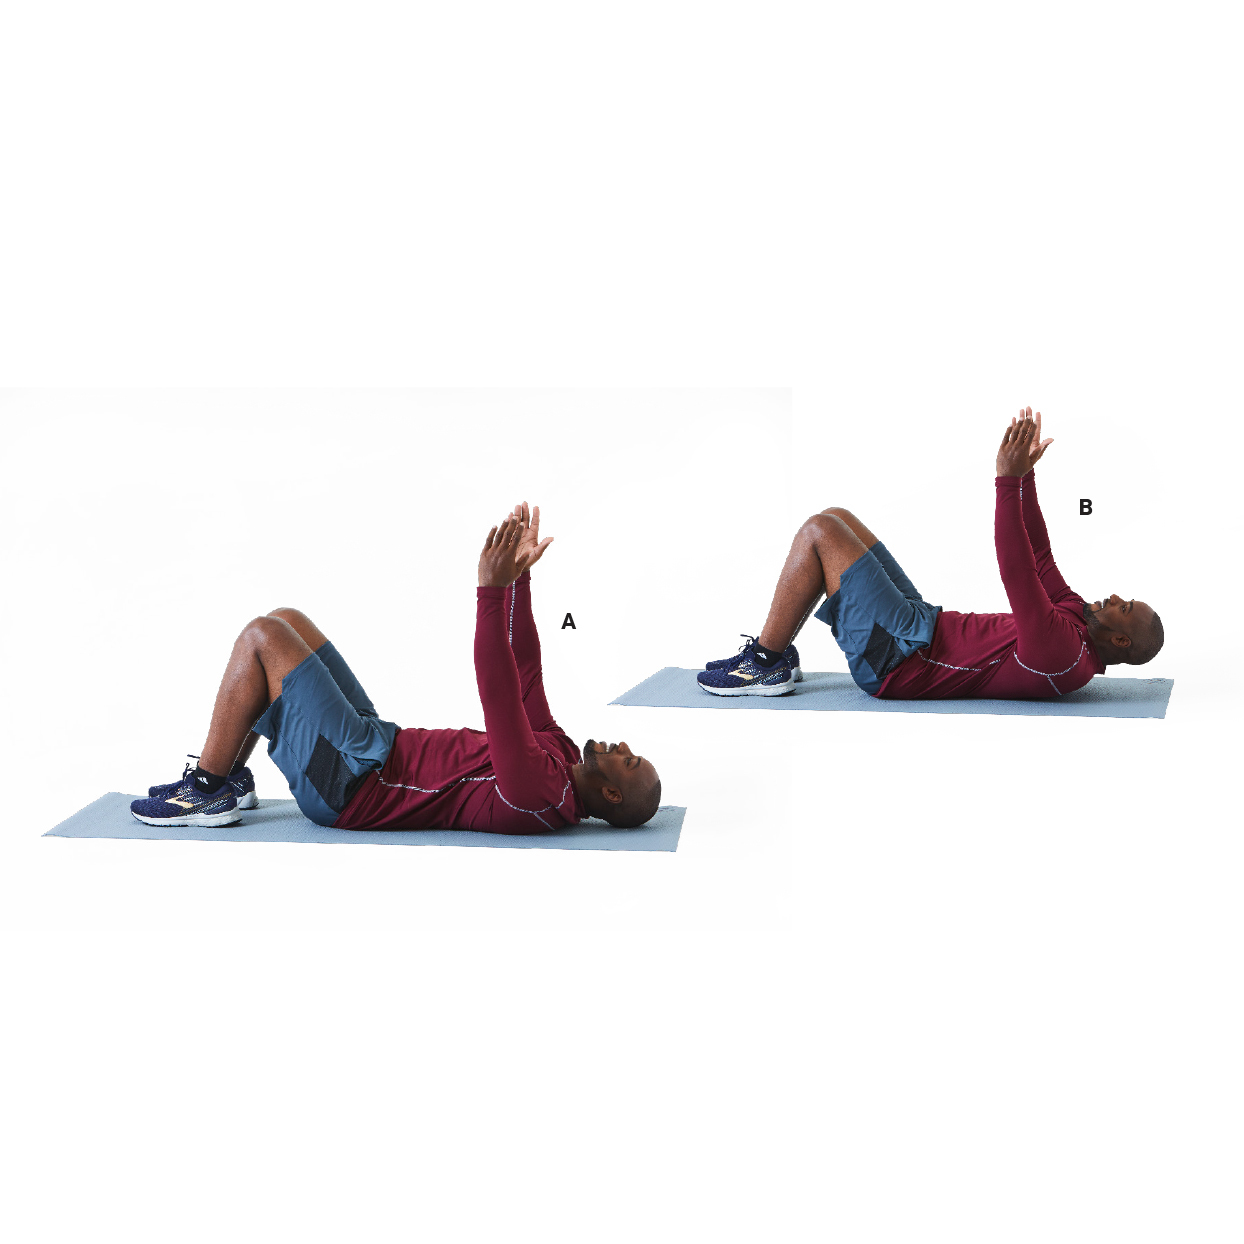 man demonstrating crunches exercise